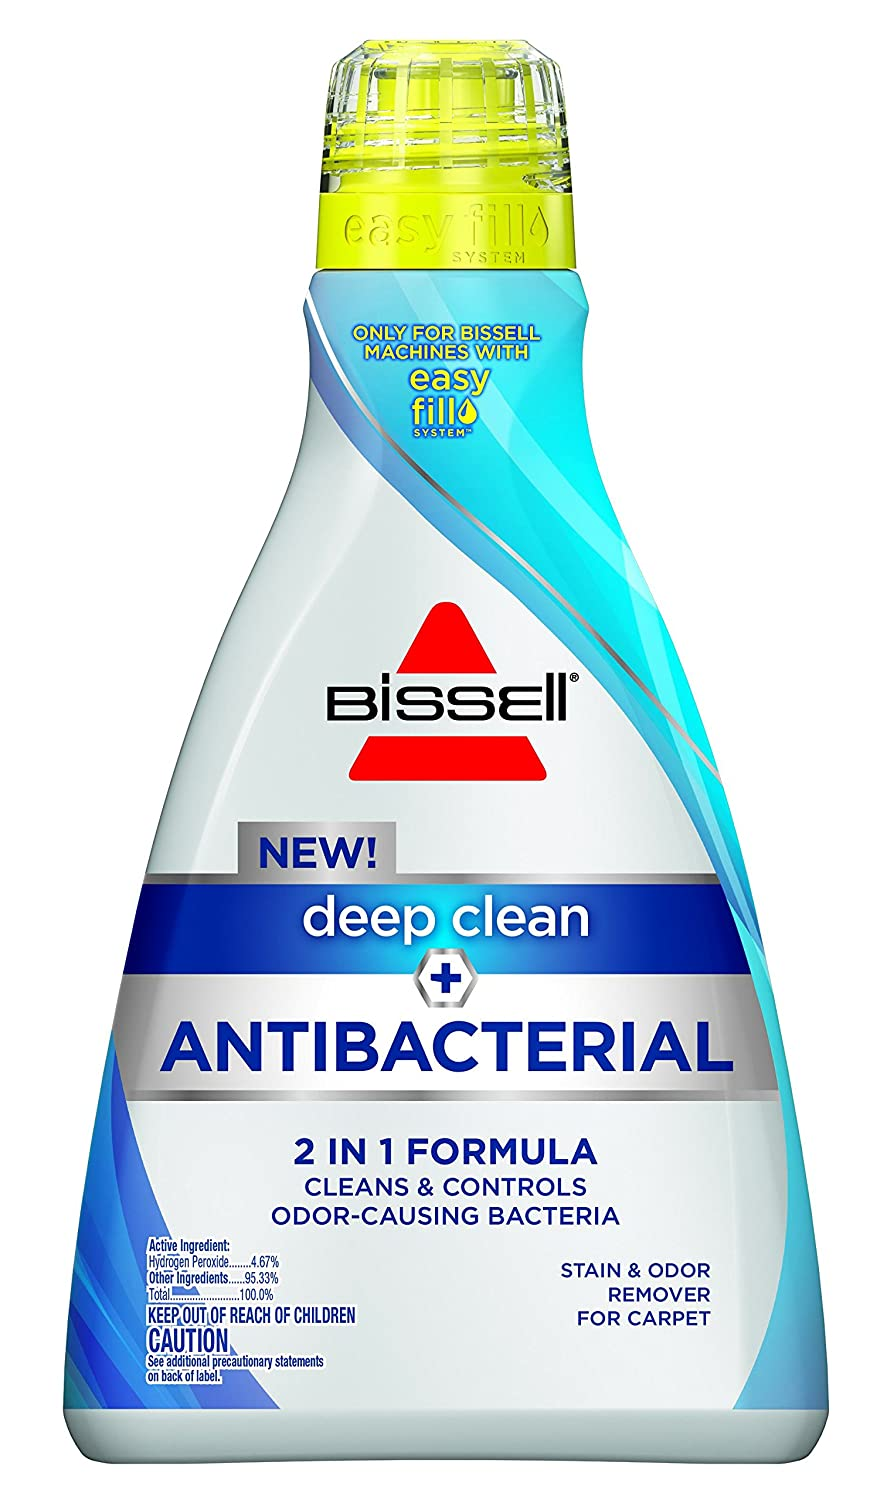 Bissell 1568A Deep Clean Plus Antibacterial Full Size Carpet Cleaning Formula